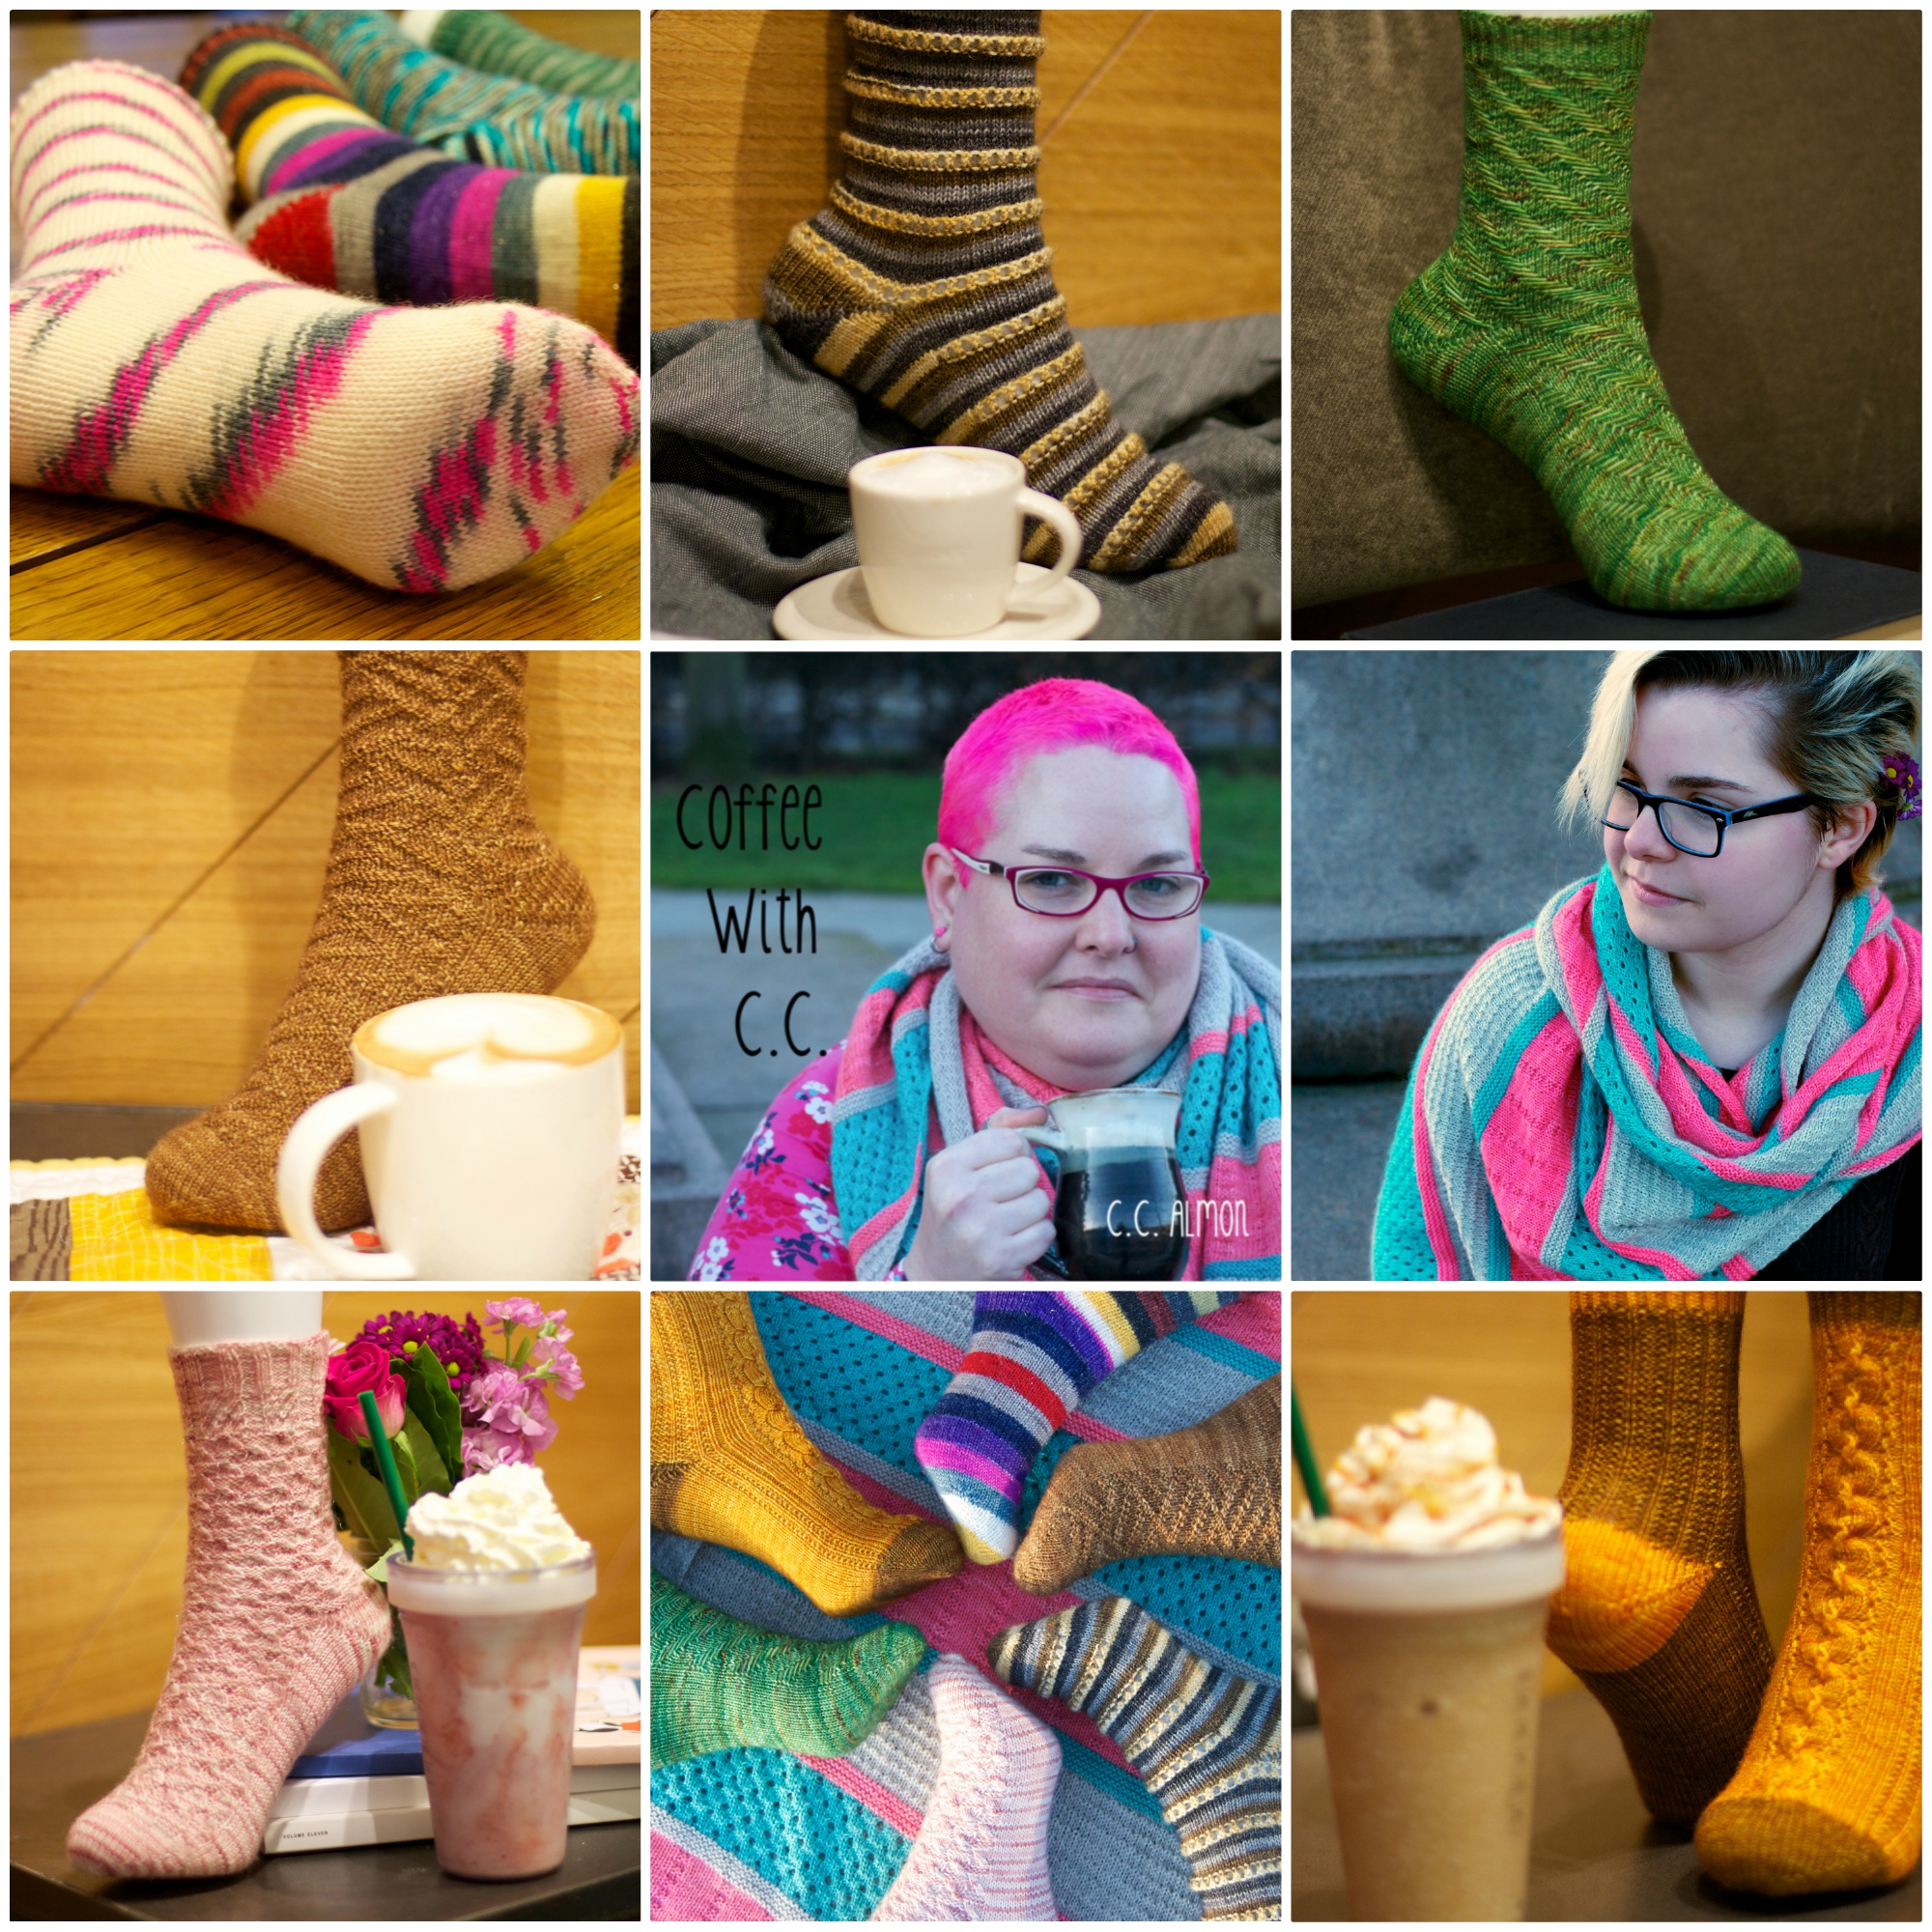 Coffee With C.C.: A 7 Pattern Caffeine Inspired Knitting Collection - Amazon US - Coffee With C.C.: A 7 Pattern Caffeine Inspired Knitting CollectionAmazon UK - Coffee With C.C.: A 7 Pattern Caffeine Inspired Knitting Collection